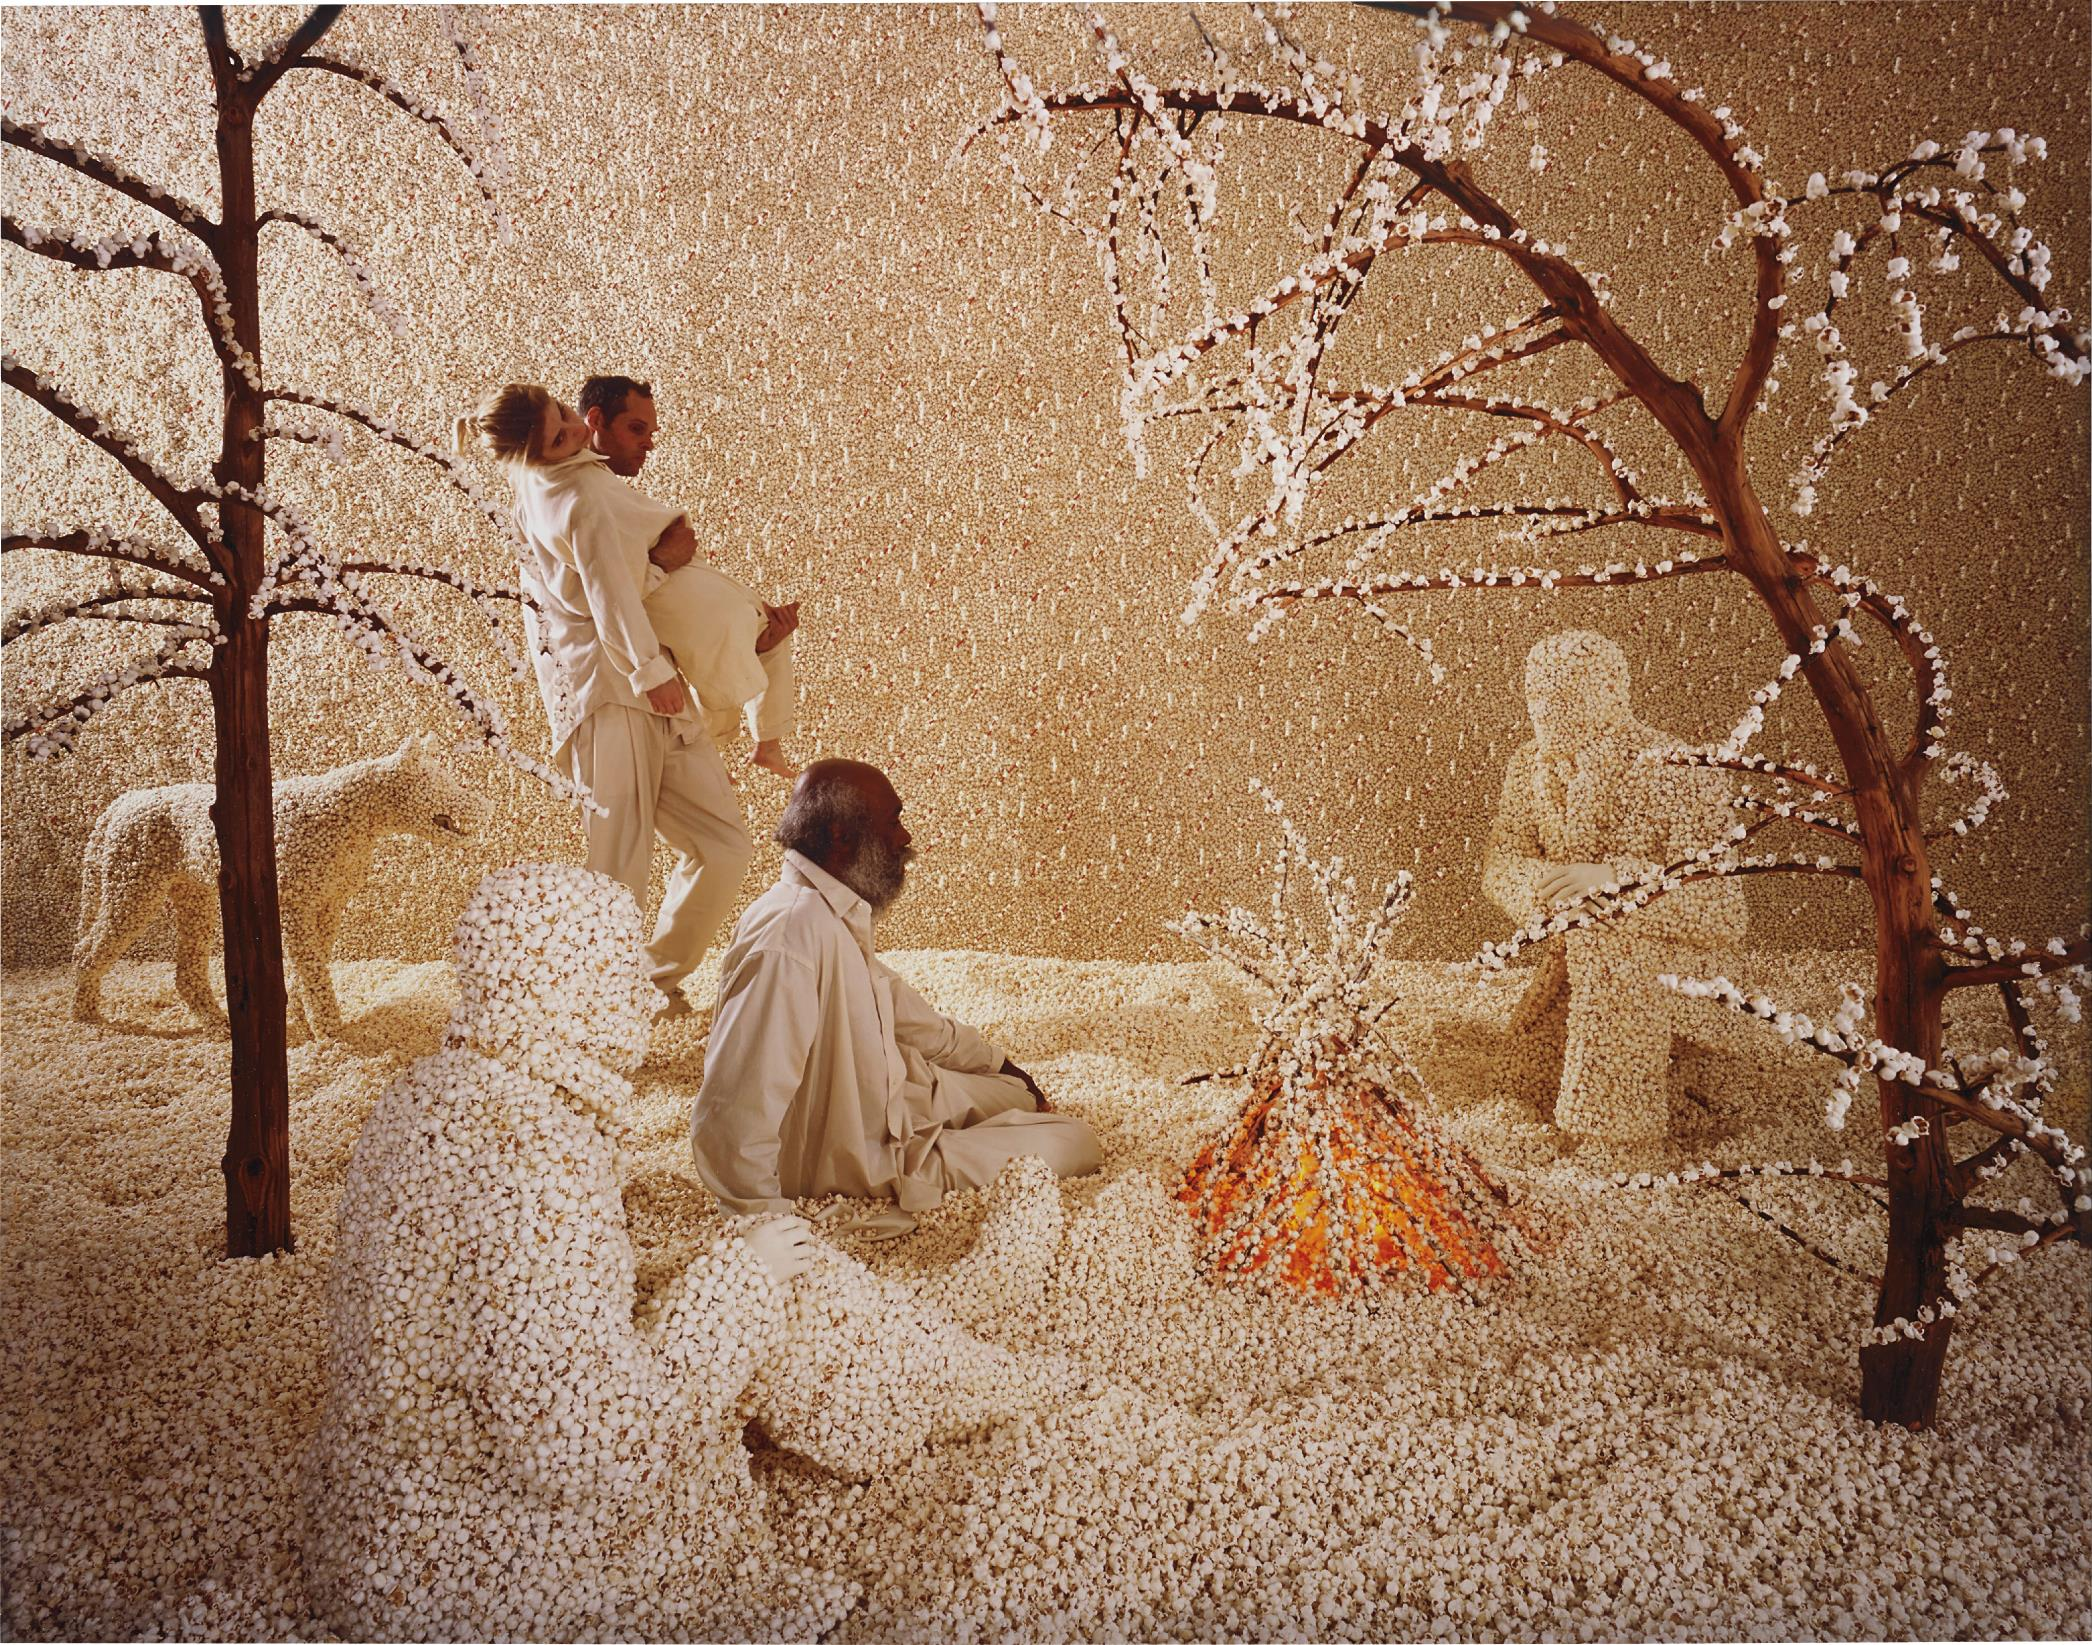 Sandy Skoglund-Raining Pop Corn-2001